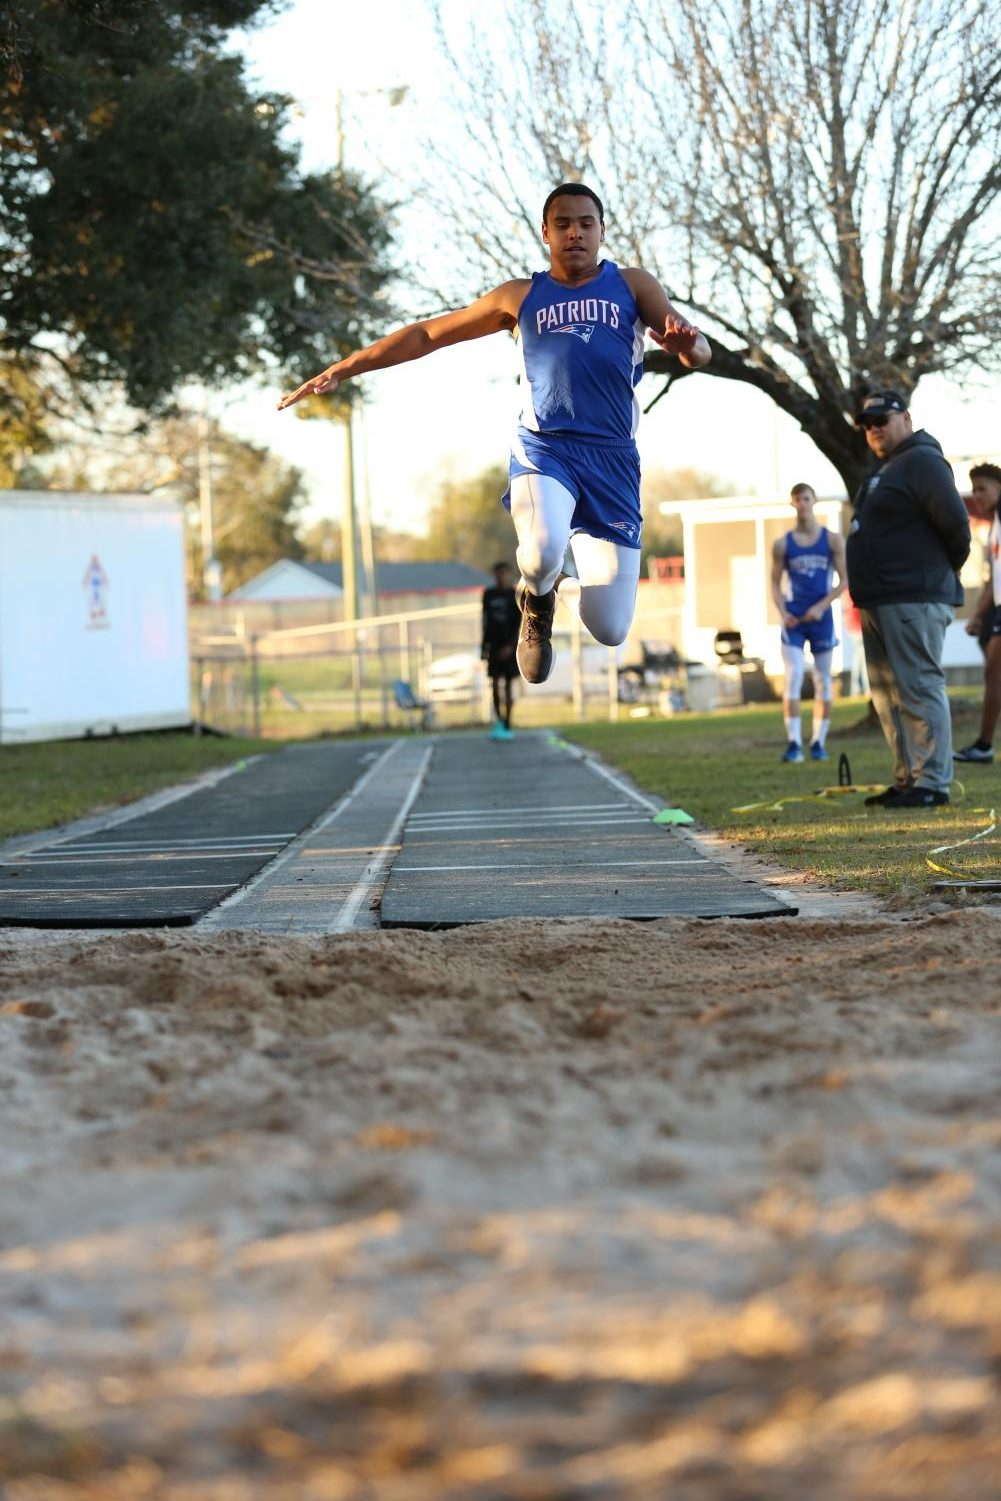 Sean Donaldson participates in the long jump event at a home track meet.